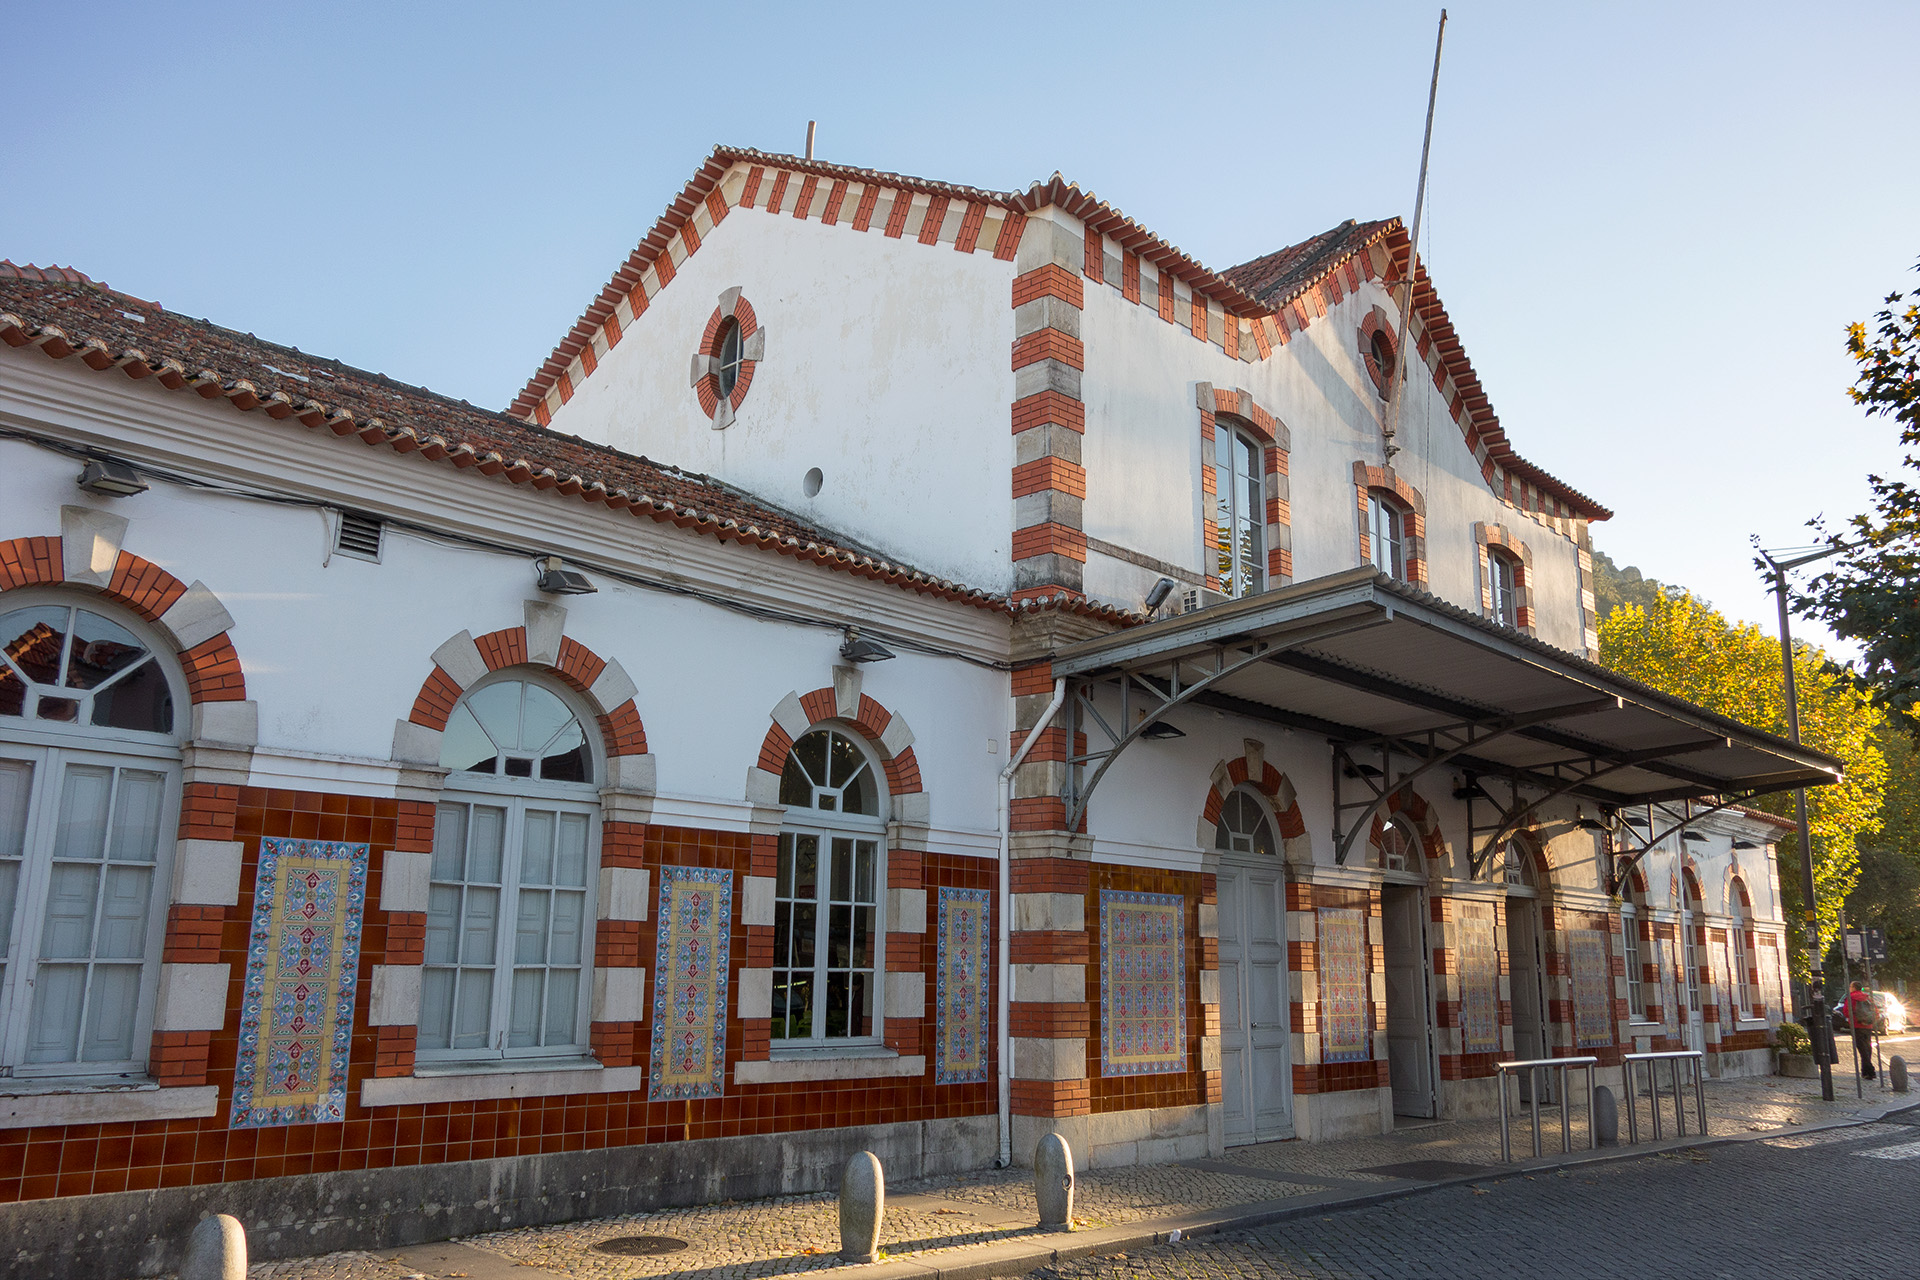 Sintra Train Station, Portugal.